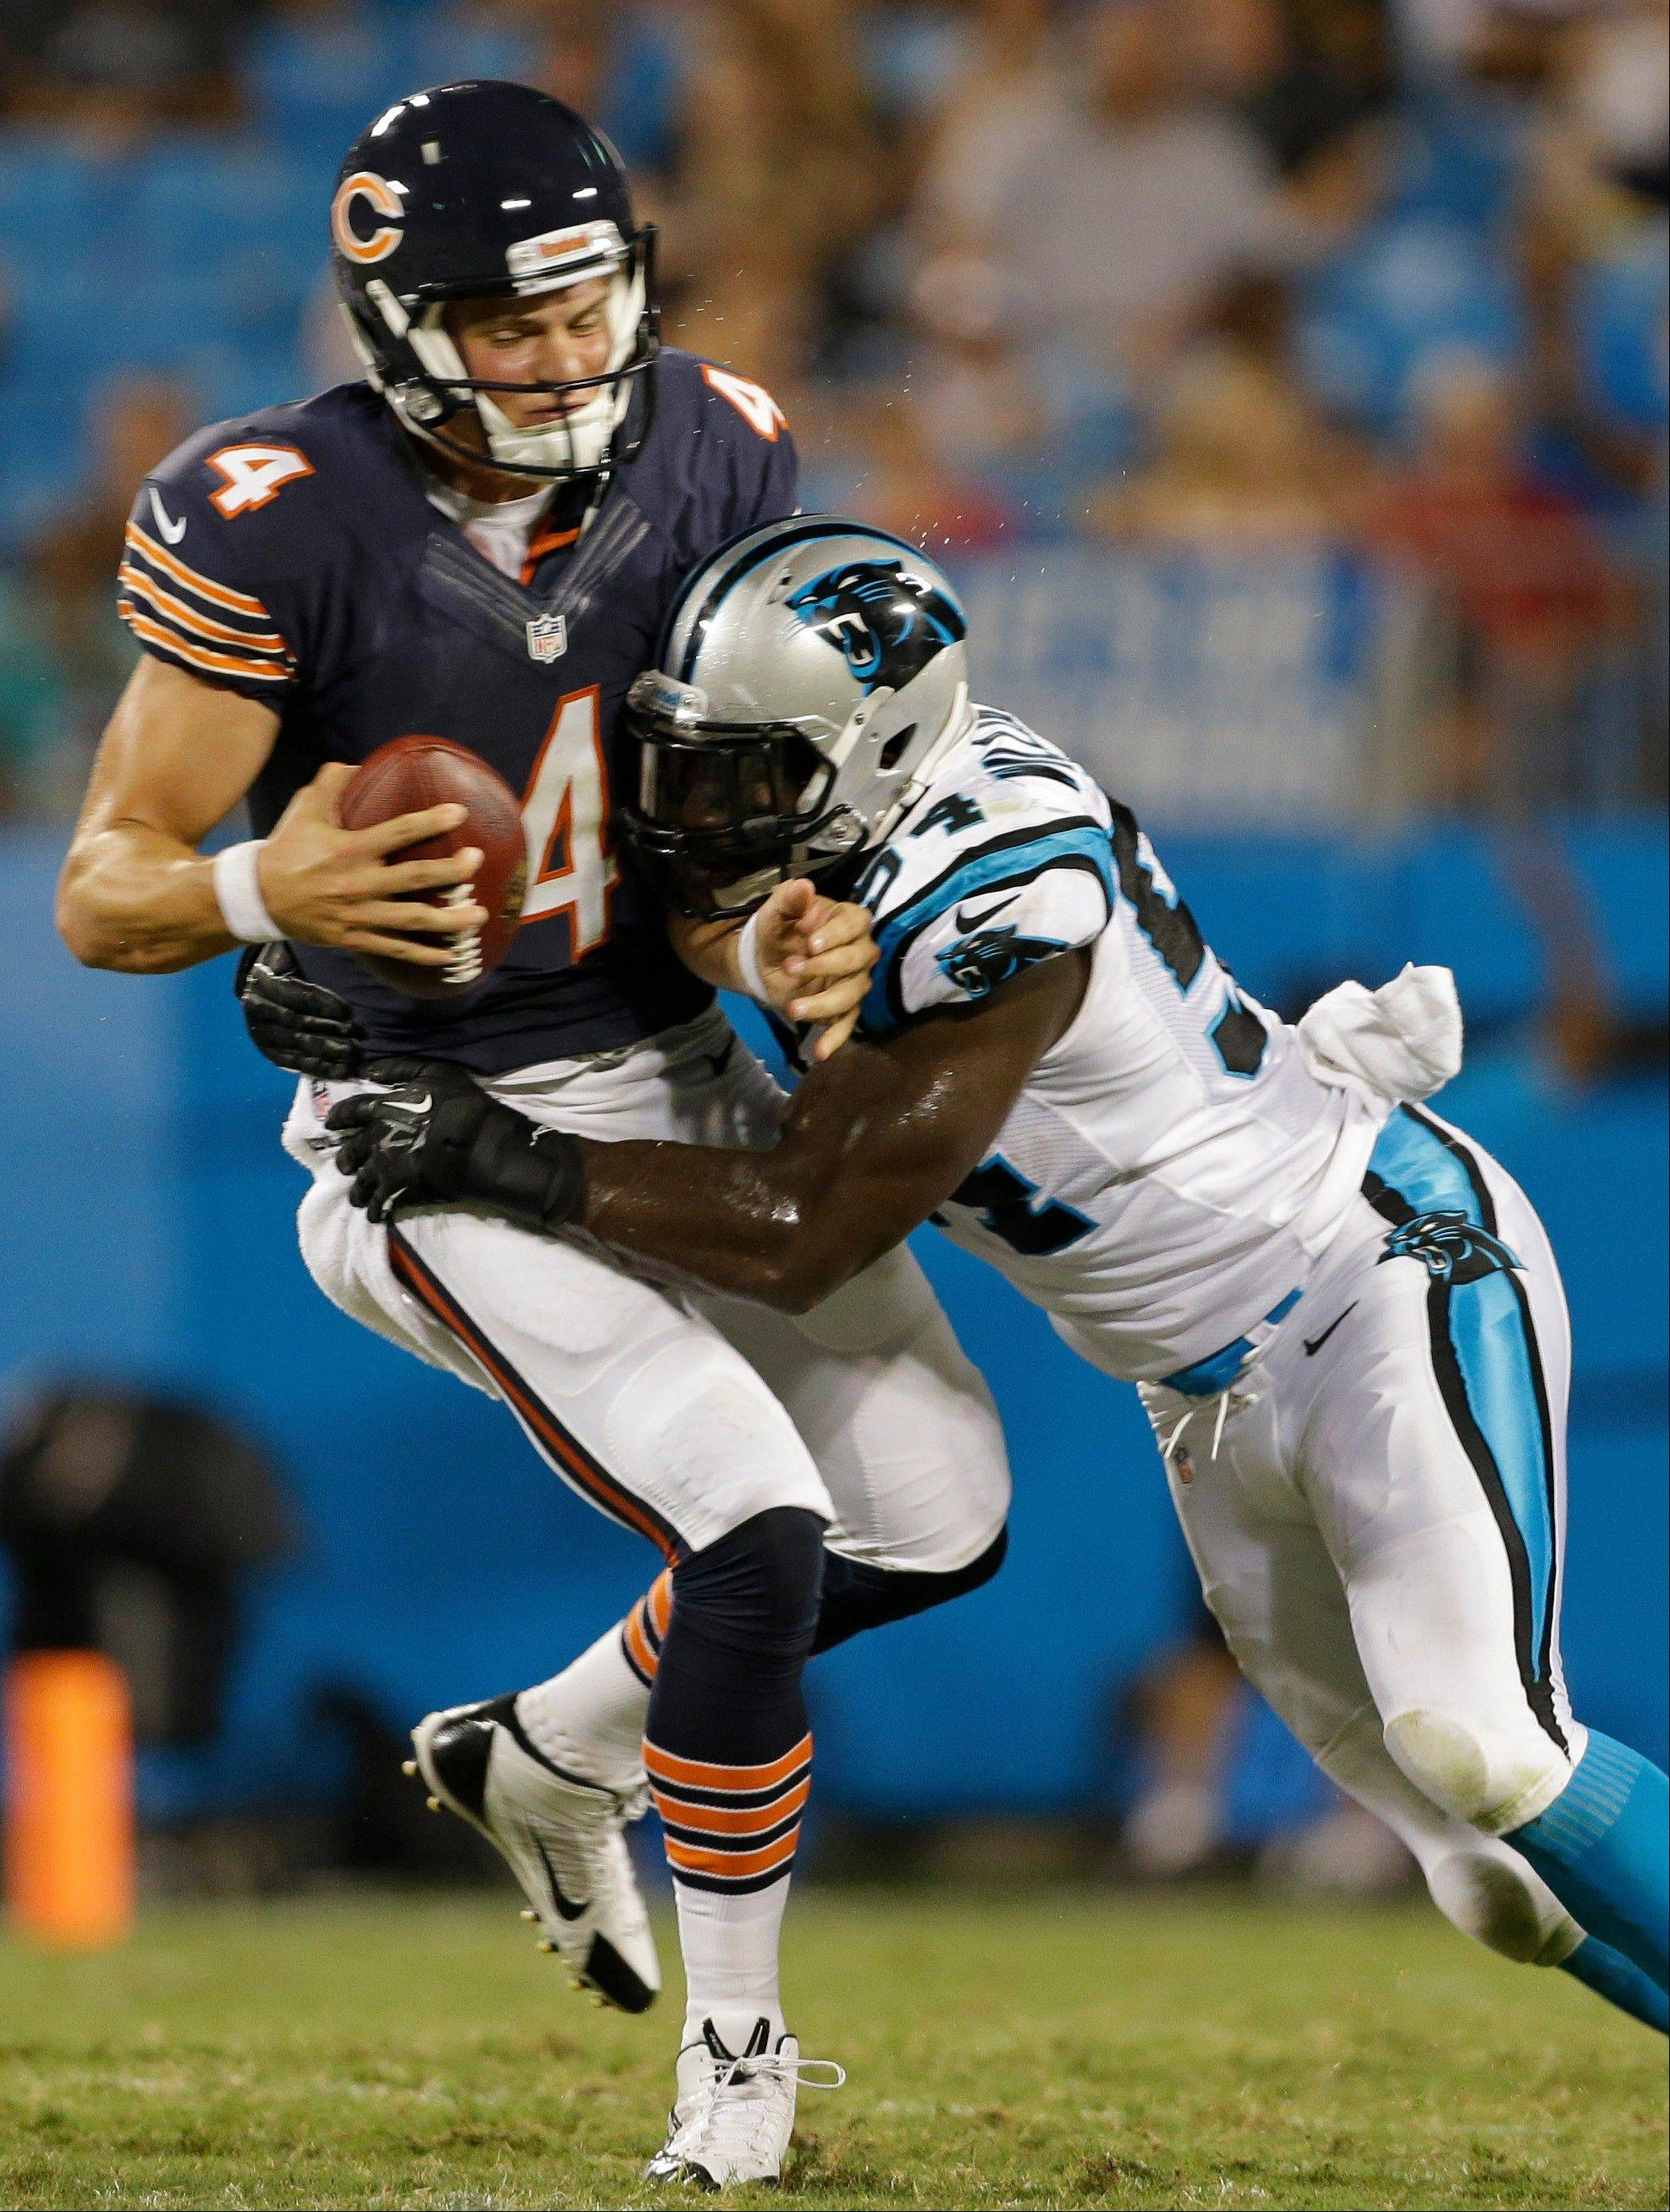 Bears quarterback Matt Blanchard is hit by the Panthers� Jason Williams on Friday during preseason action in Charlotte, N.C.